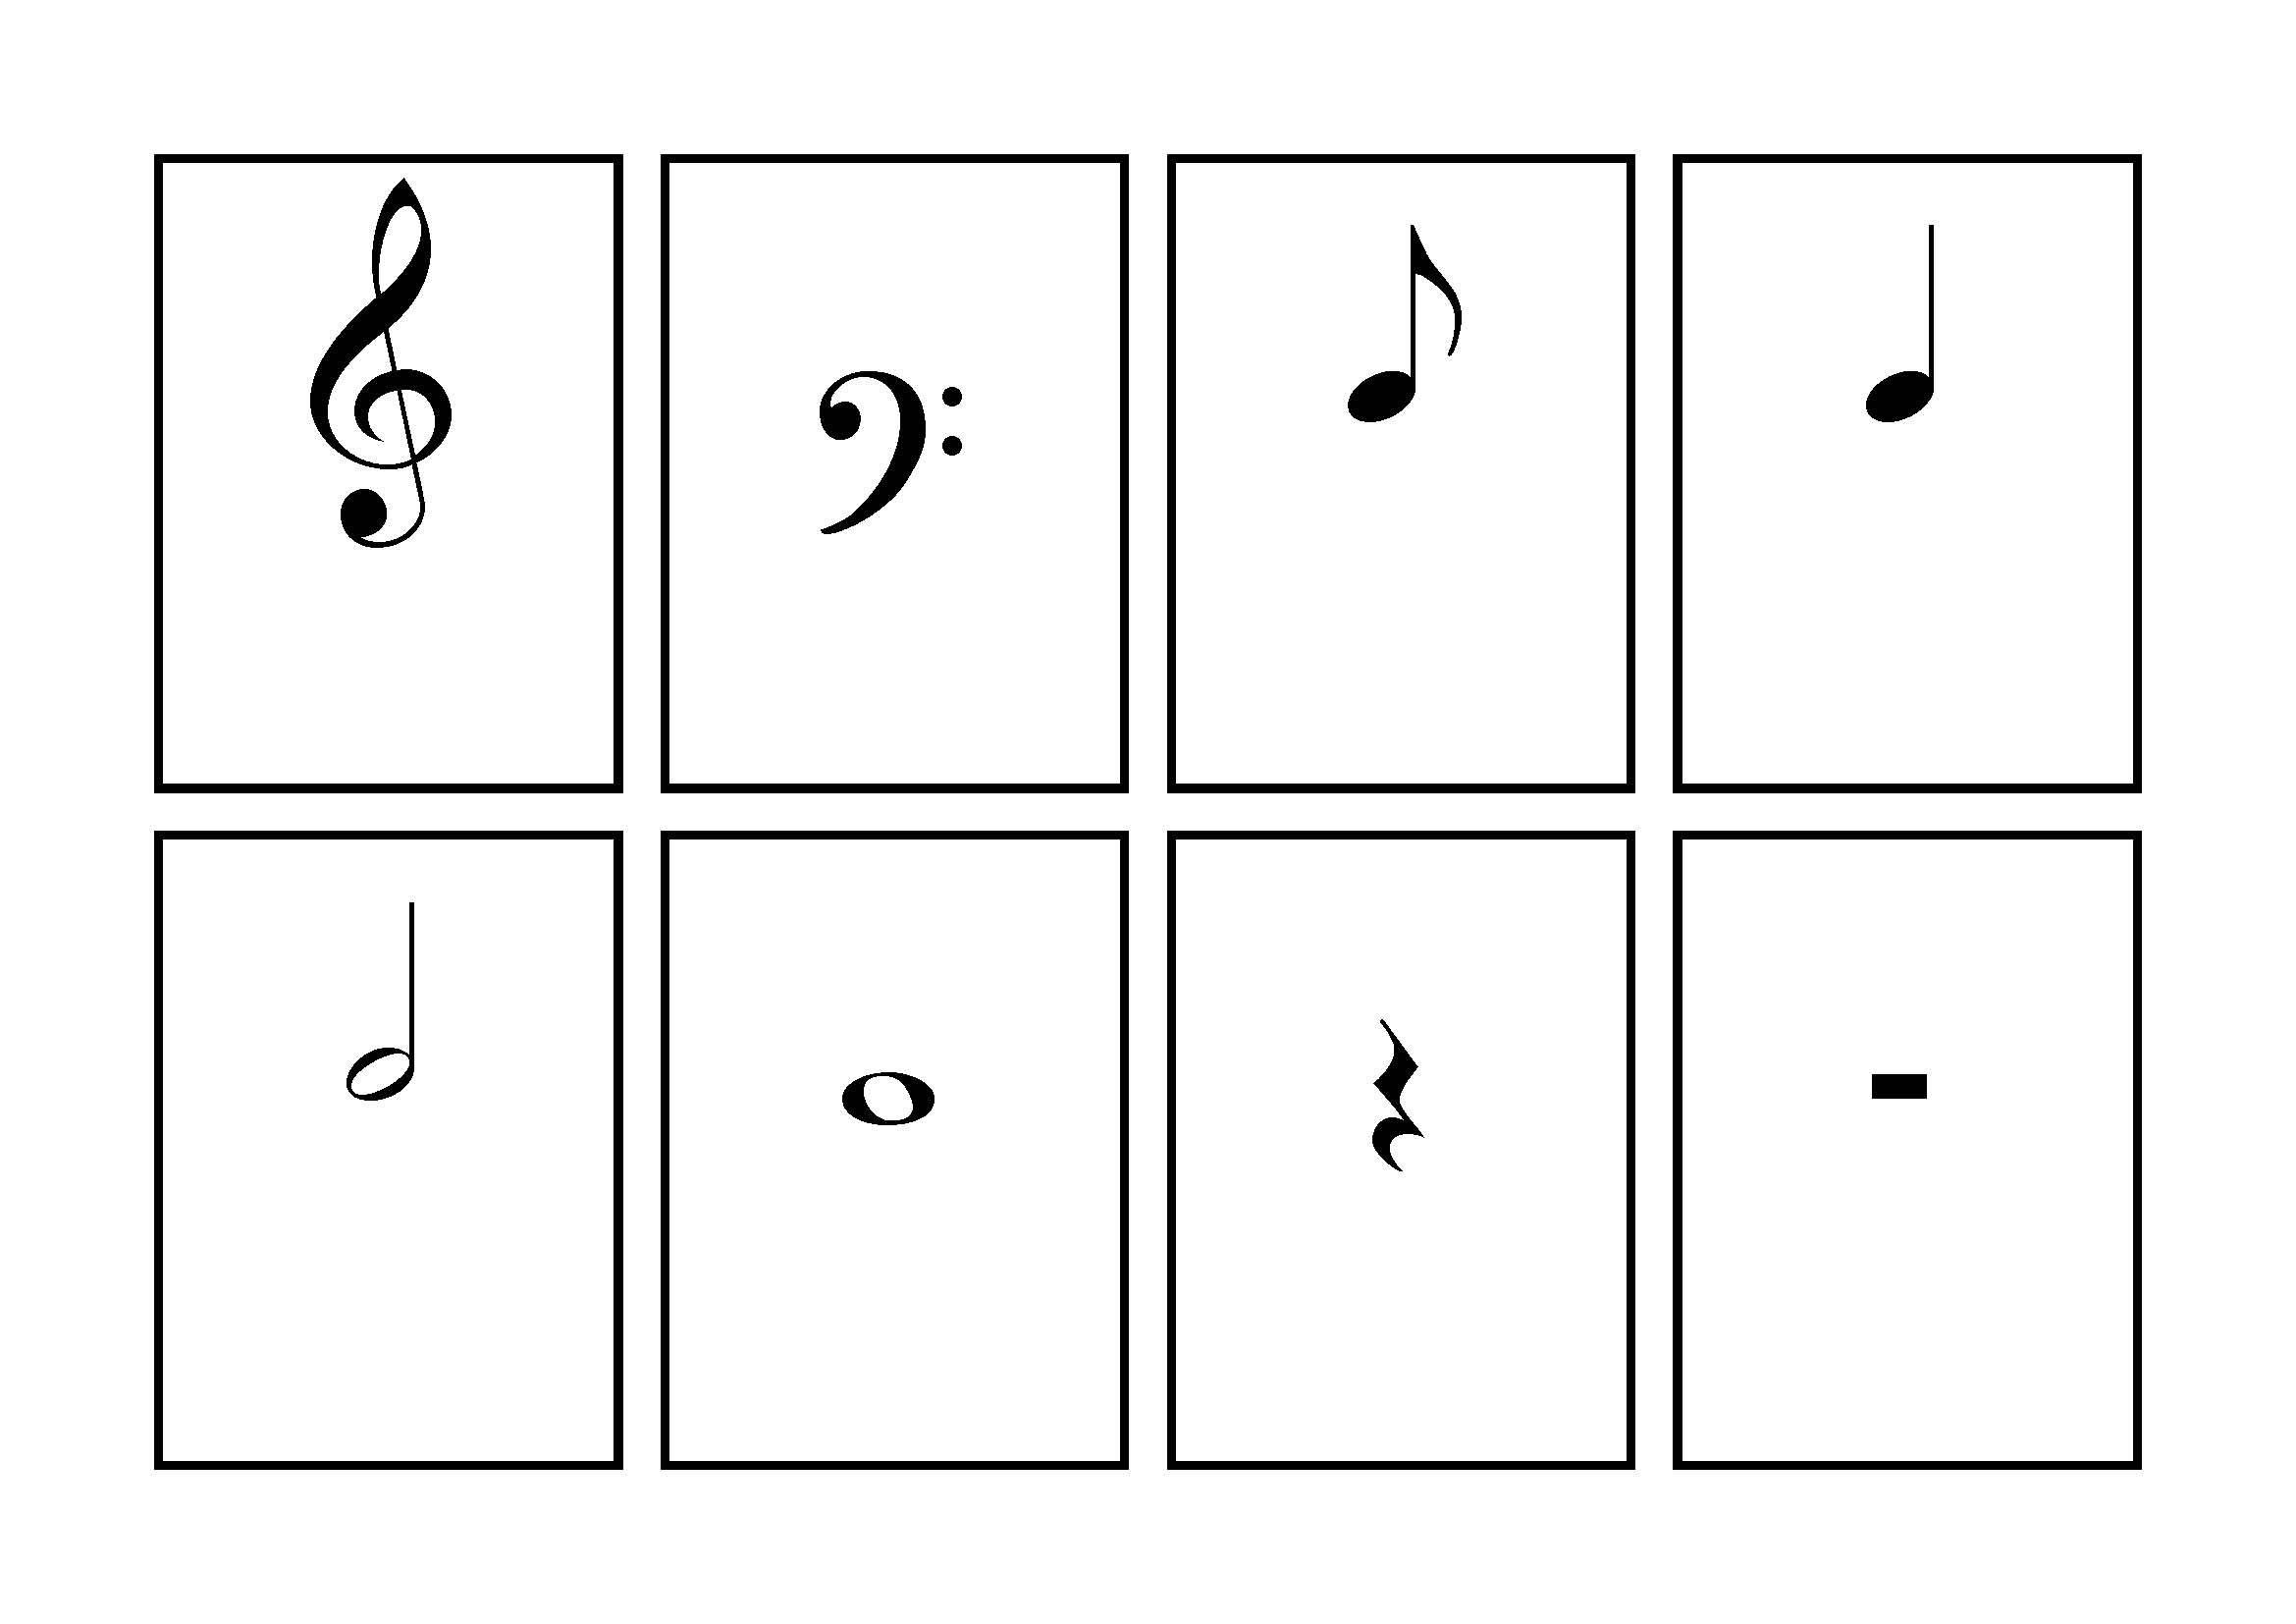 music symbol flash cards printable music pinterest music notes music symbols and flashcard. Black Bedroom Furniture Sets. Home Design Ideas